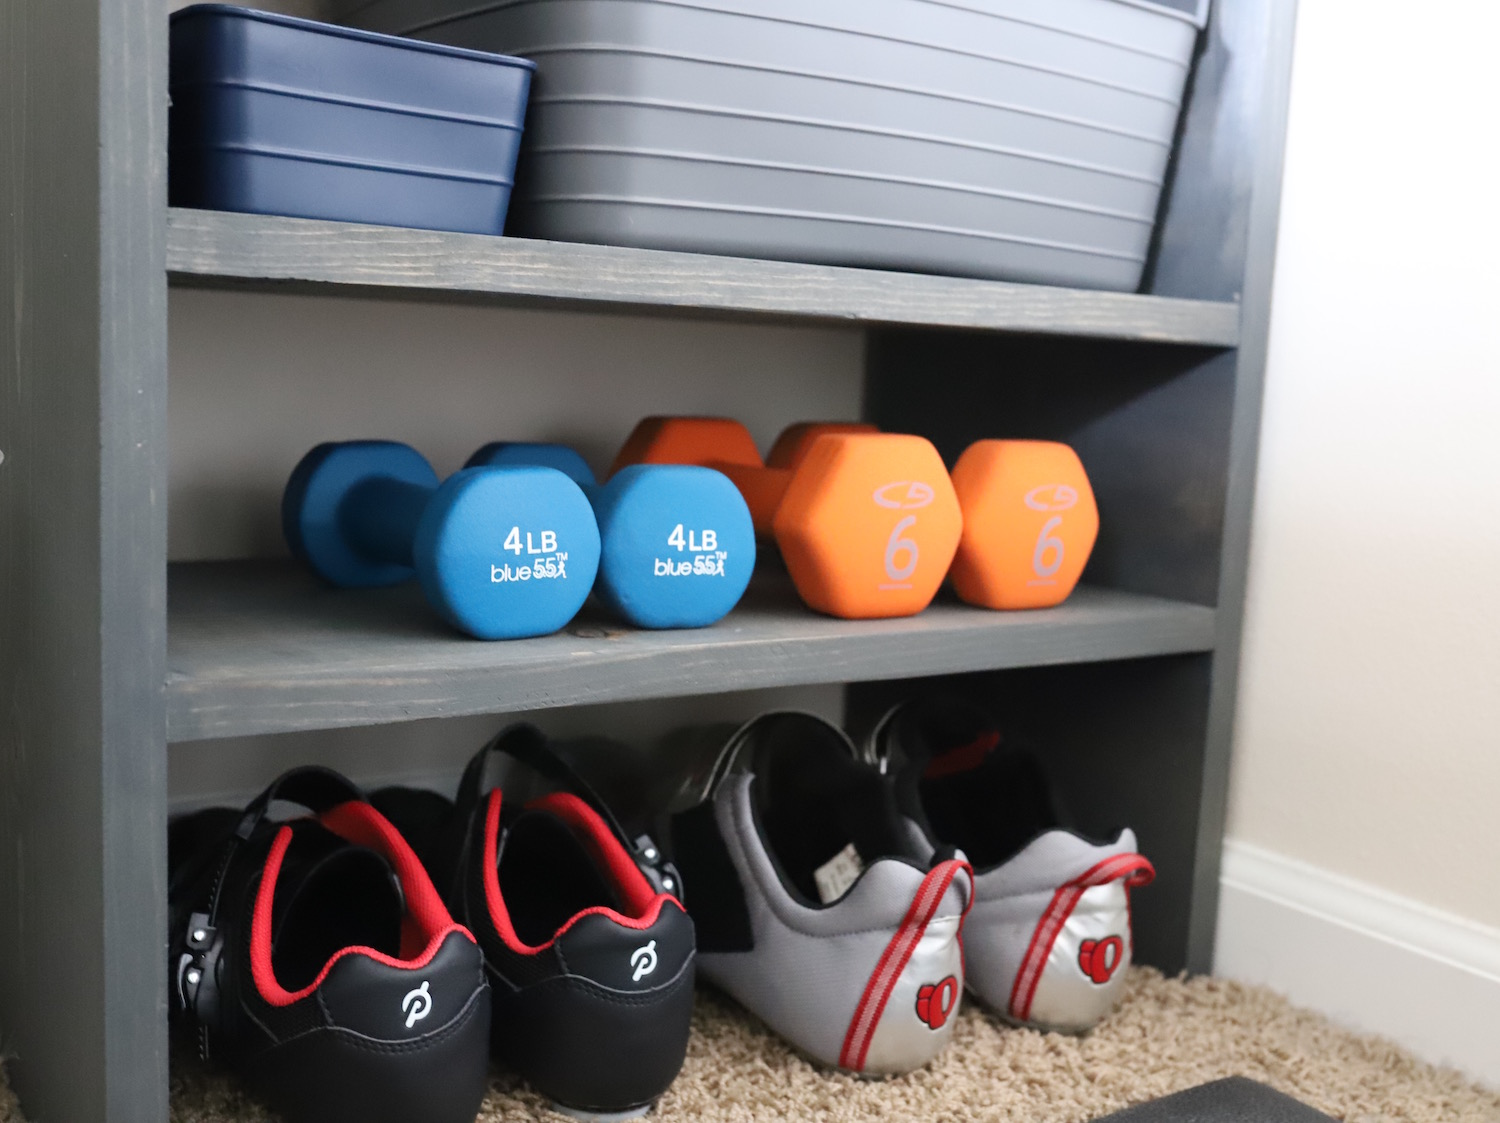 The shelf where we store our weights, towels, and spin shoes.